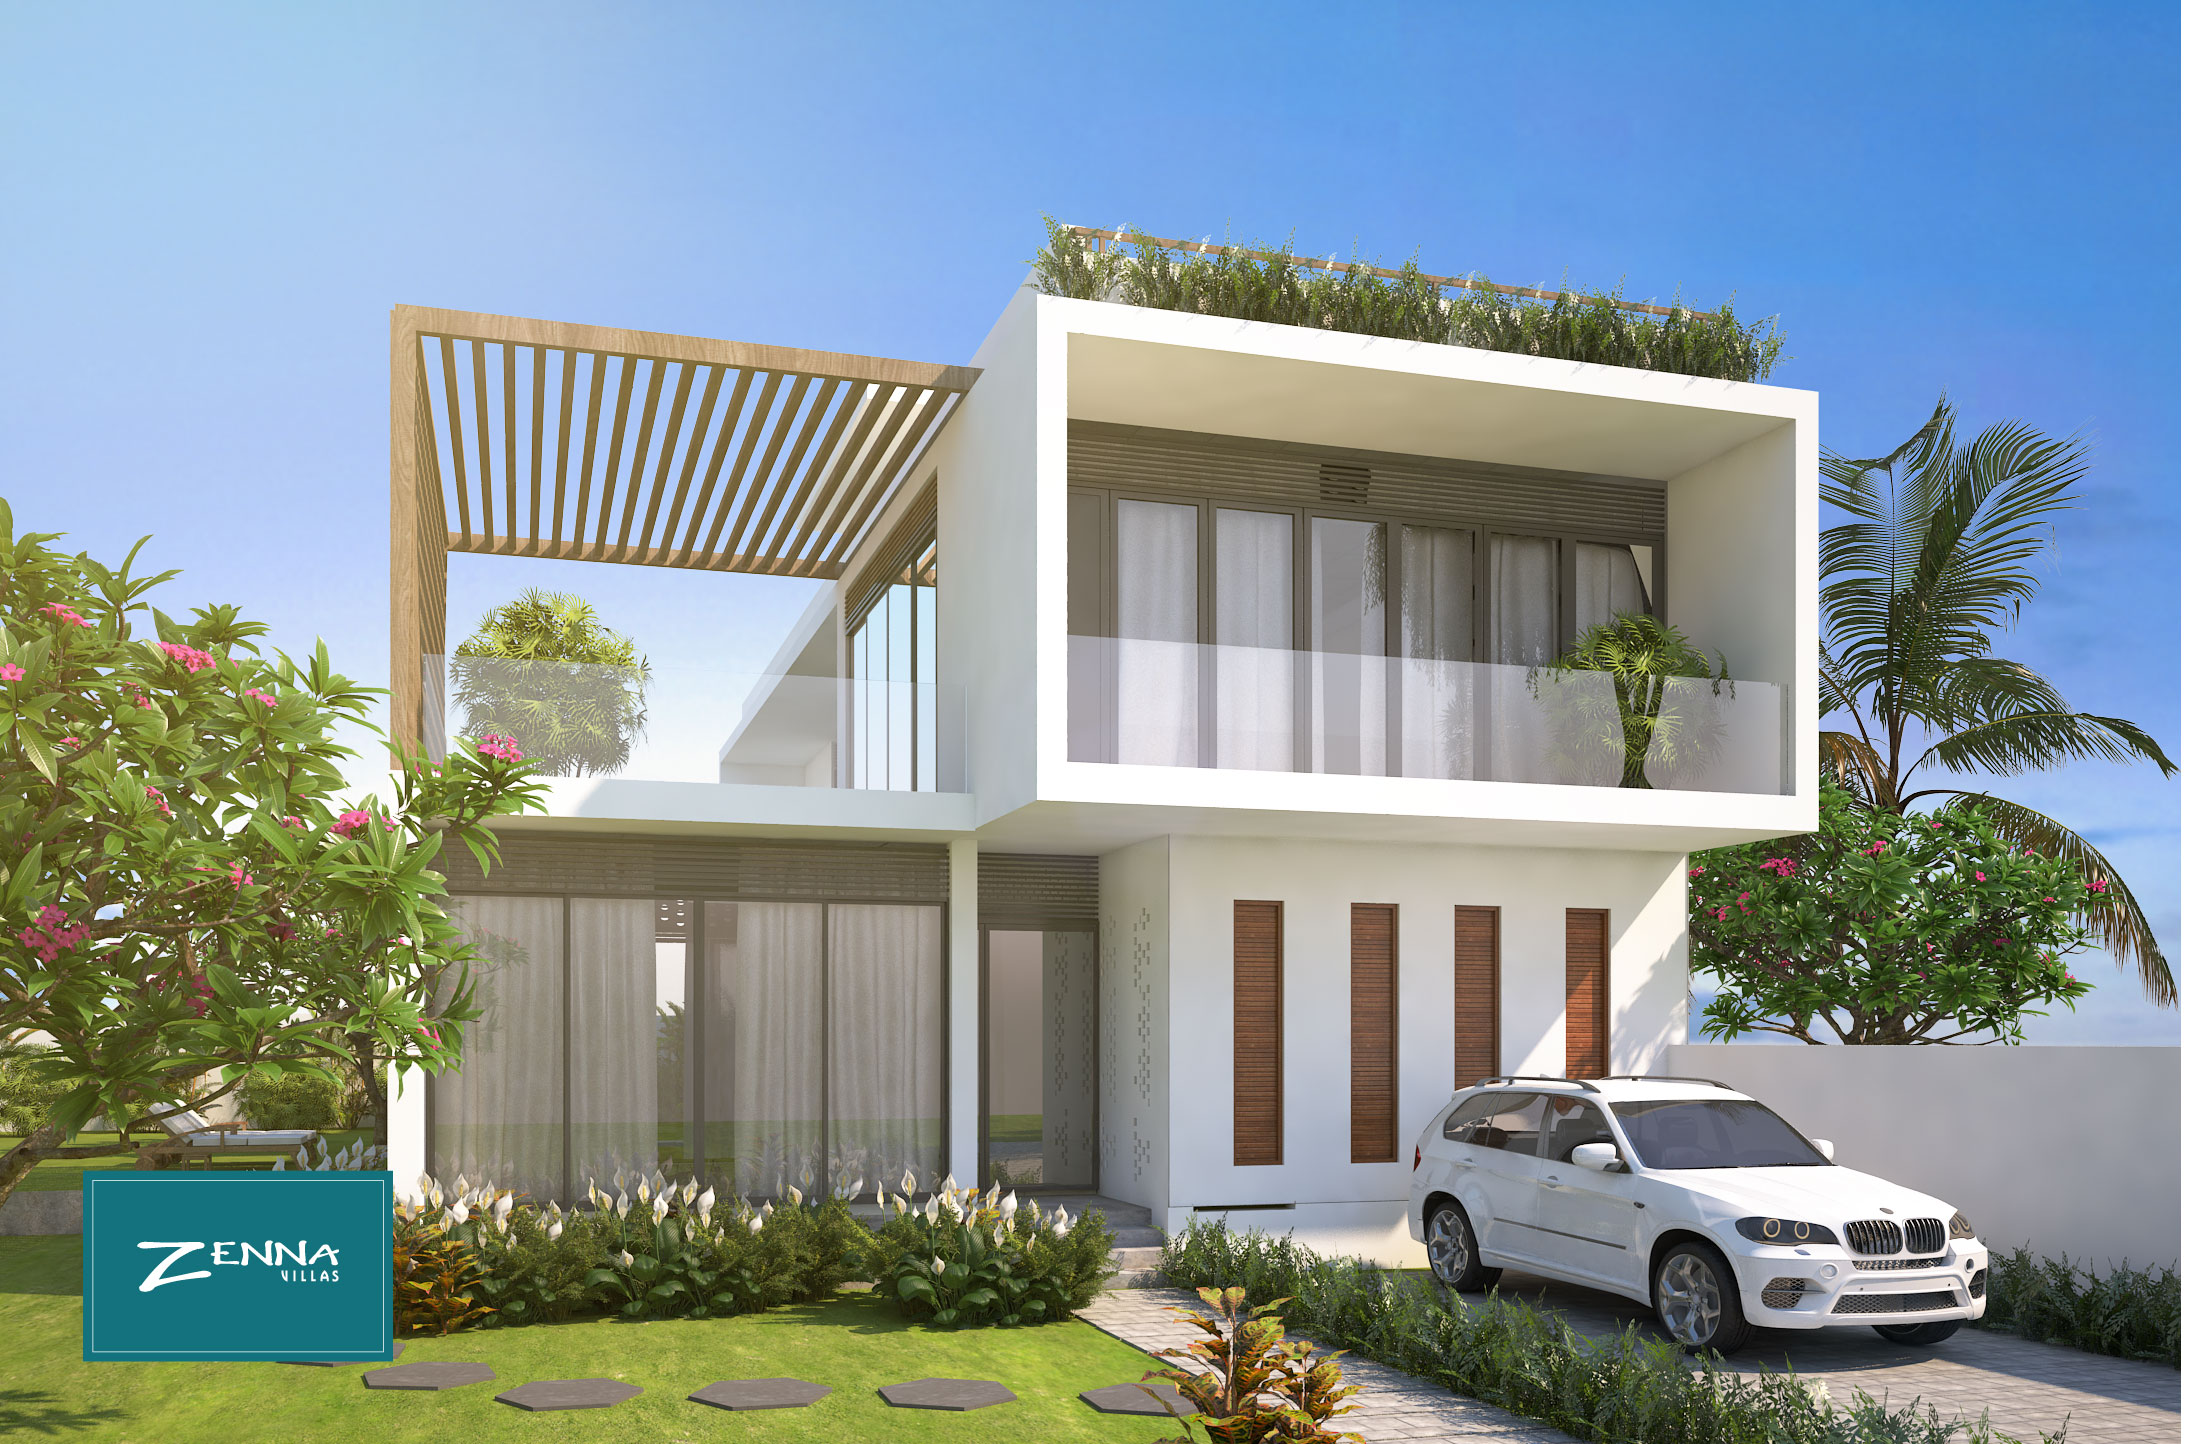 thiet ke zenna villas - cantavil long hai